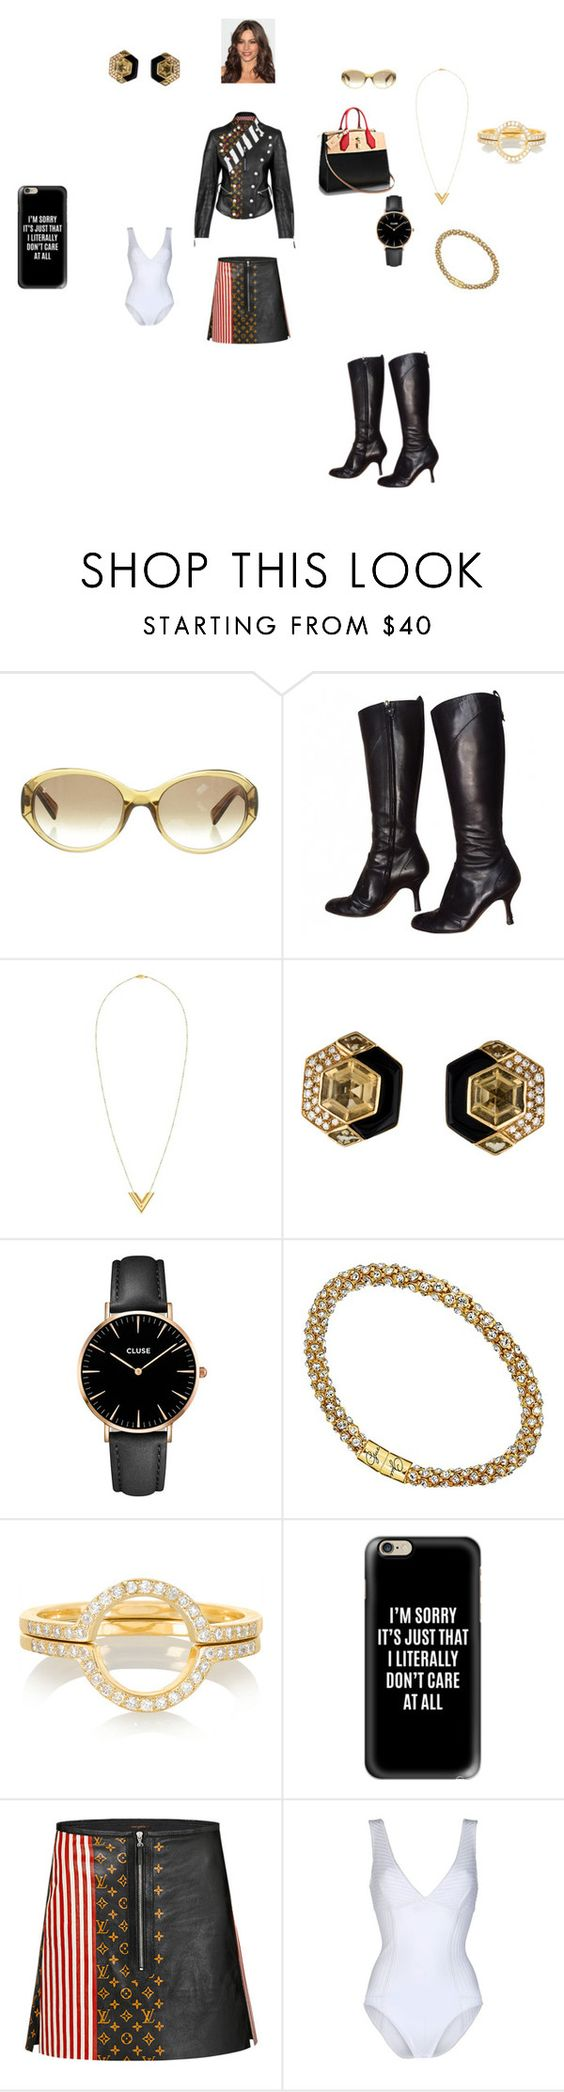 """Todo es acerca de mi ( It's all about me) Made by Mom"" by theultrafighter ❤ liked on Polyvore featuring Louis Vuitton, CLUSE, GUESS, Ileana Makri, Casetify and Gentryportofino"